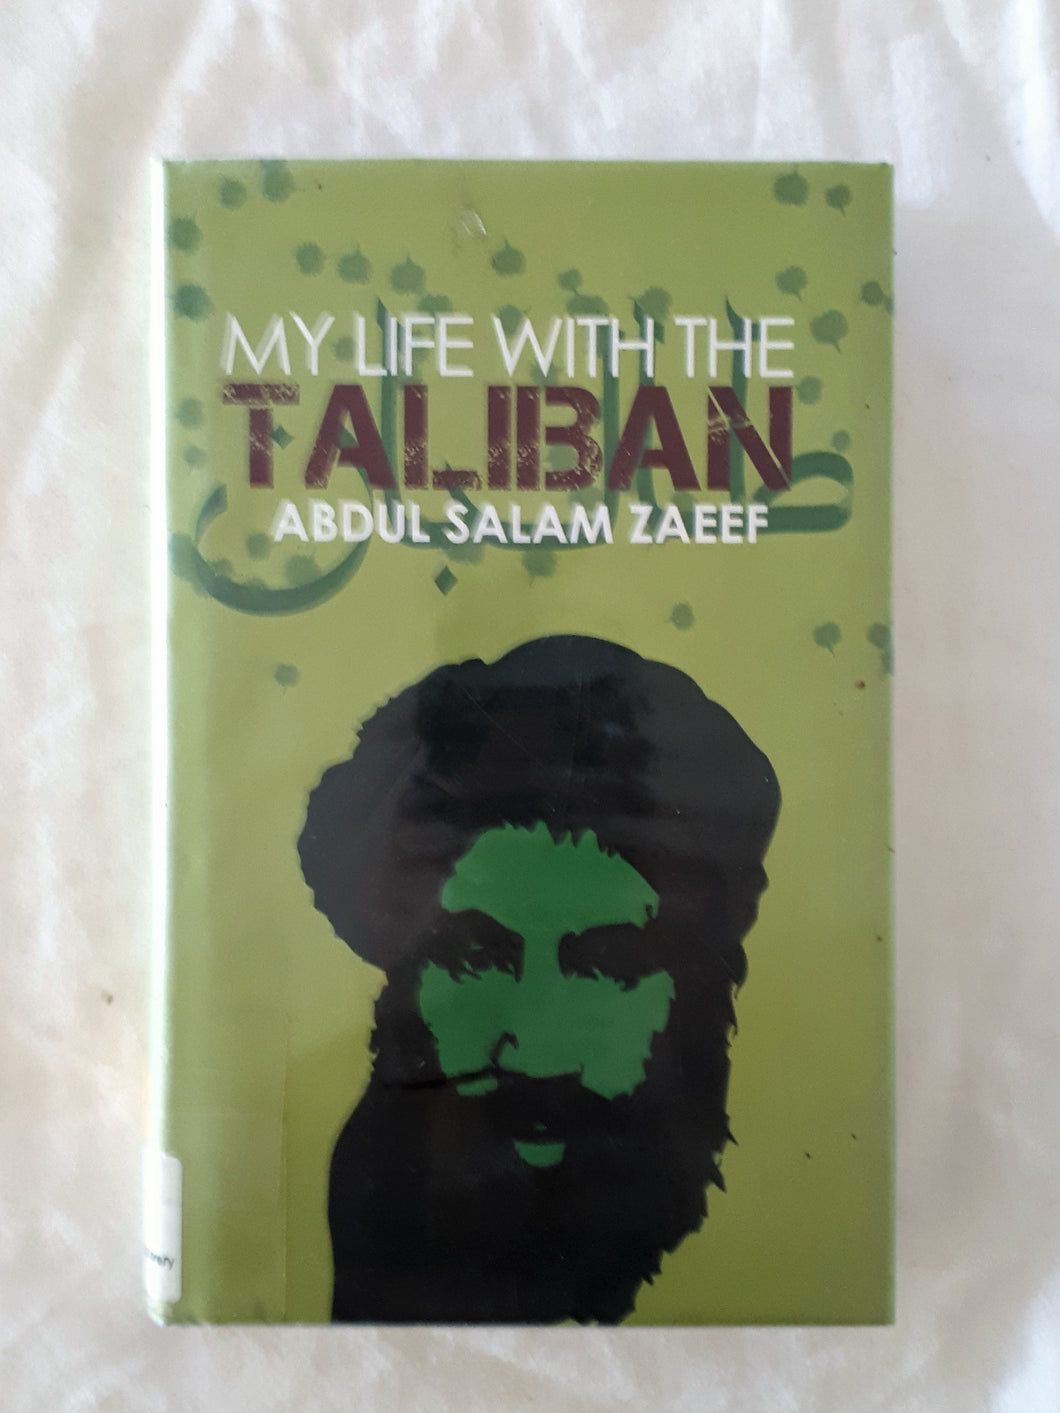 My Life With the Taliban by Abdul Salam Zaeef